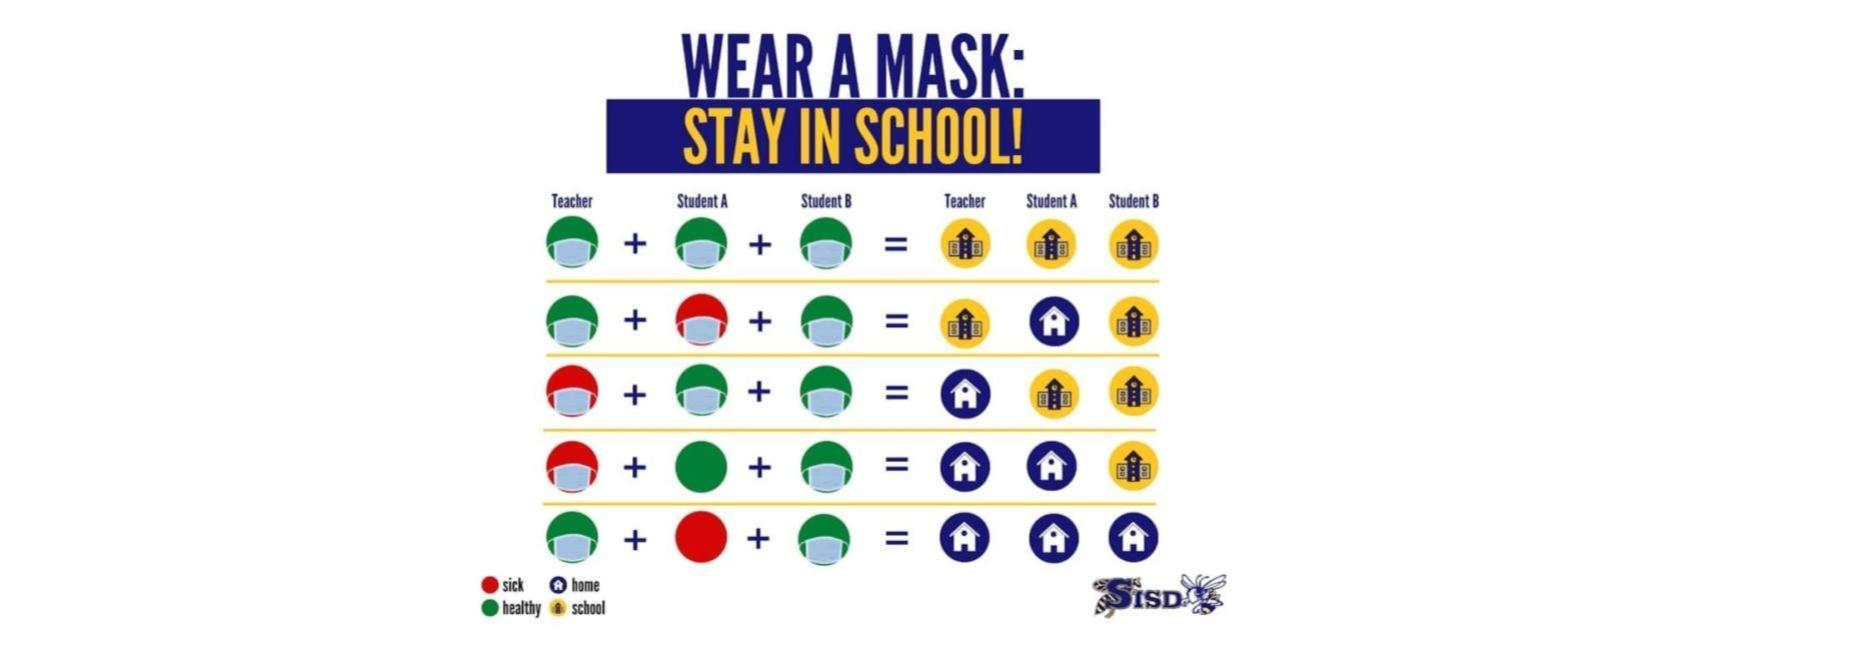 wear a mask graphic